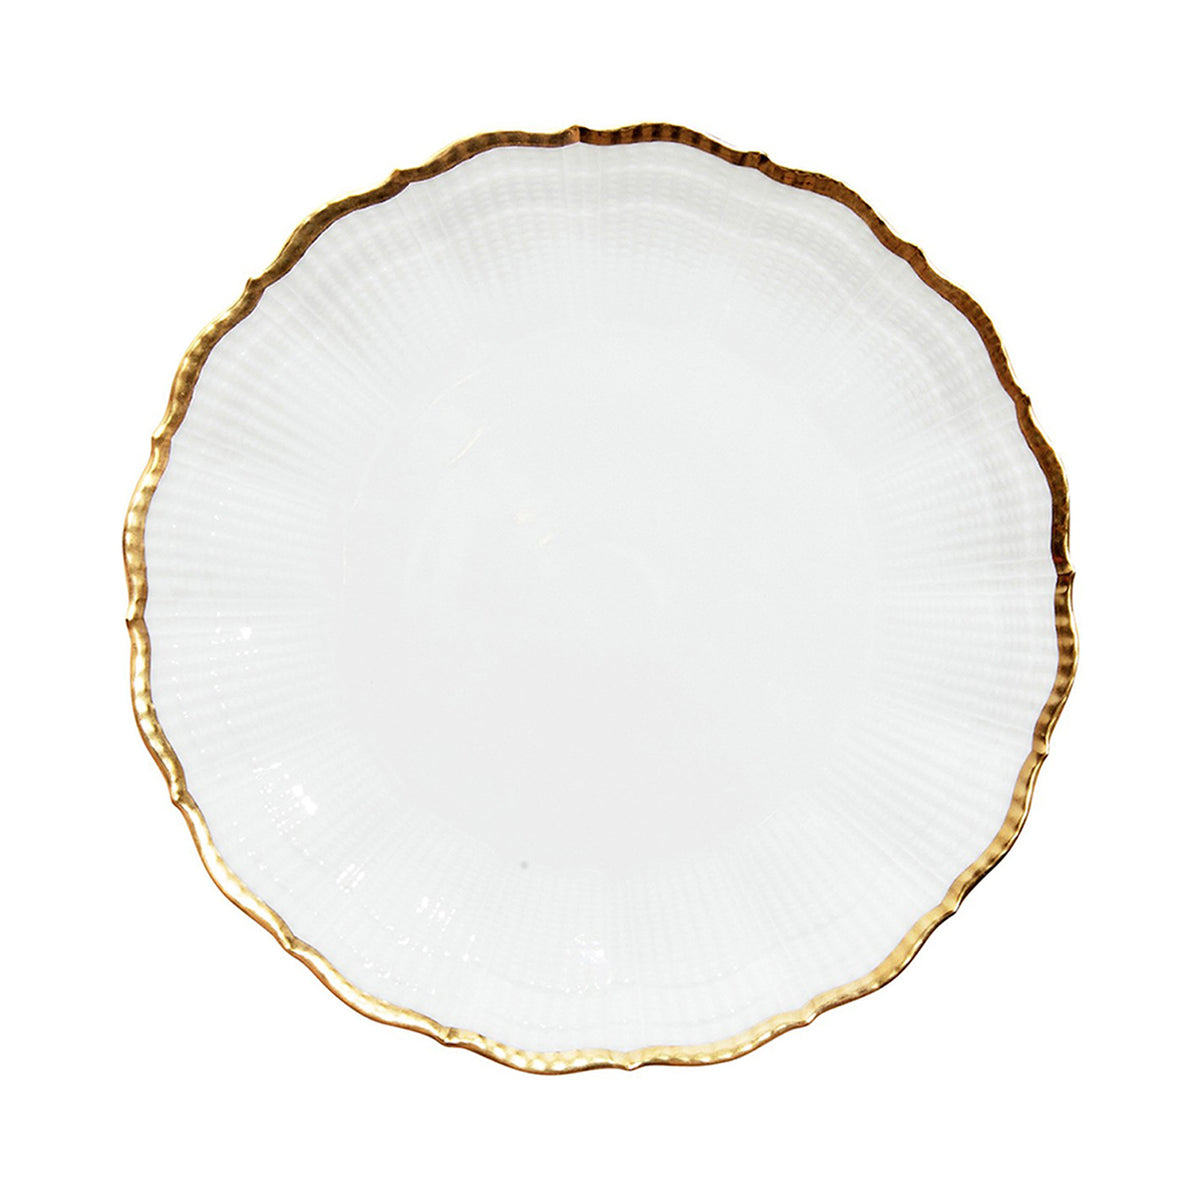 Corail Or Porcelain Dinner Plate